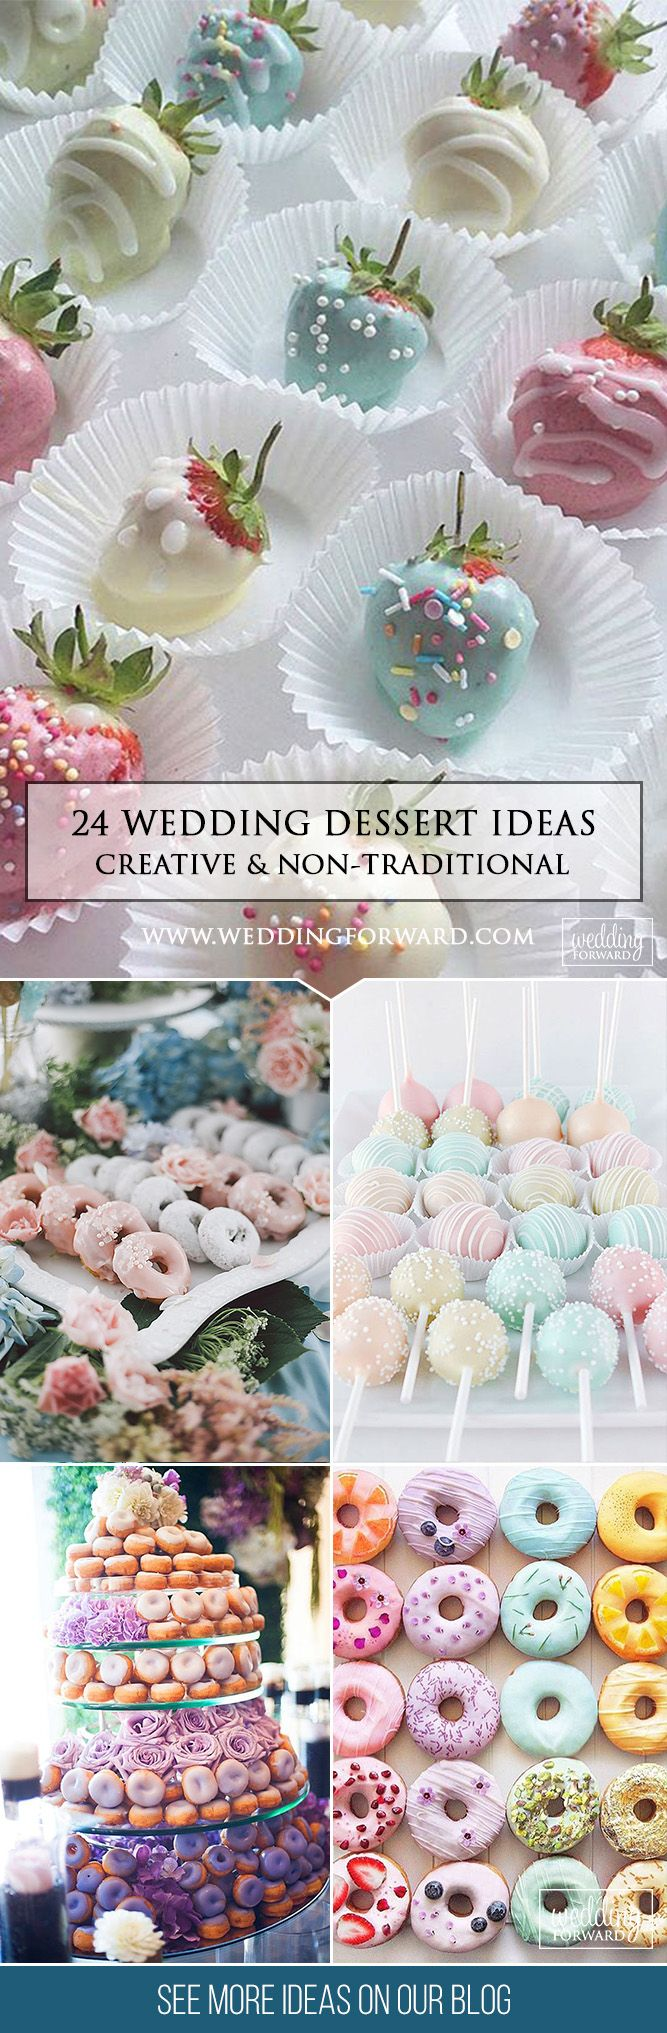 24 Creative Non-Traditional Wedding Dessert Ideas ❤ If you need a creative solution for your wedding dessert, look through our new listing of non-traditional wedding dessert ideas below. Pick the best! See more: http://www.weddingforward.com/non-traditional-wedding-dessert-ideas/ #weddings #cakes